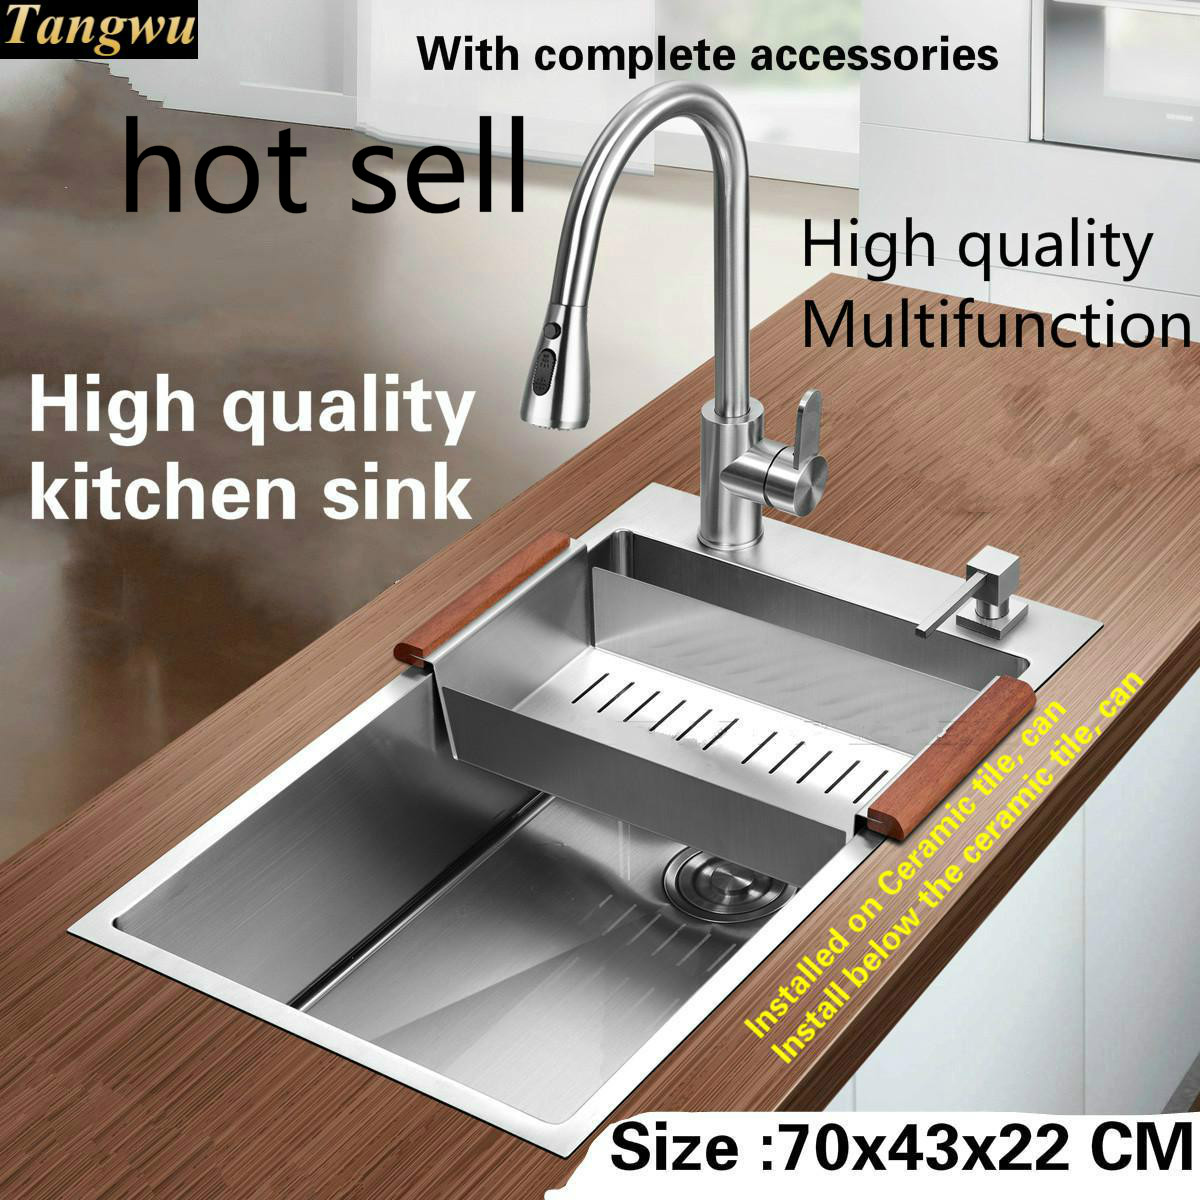 Tangwu High Quality Food Grade Stainless Steel Kitchen Sink 1.2 MM Thick Handmade Single Slot Durable Hot Sell 70x43 CM